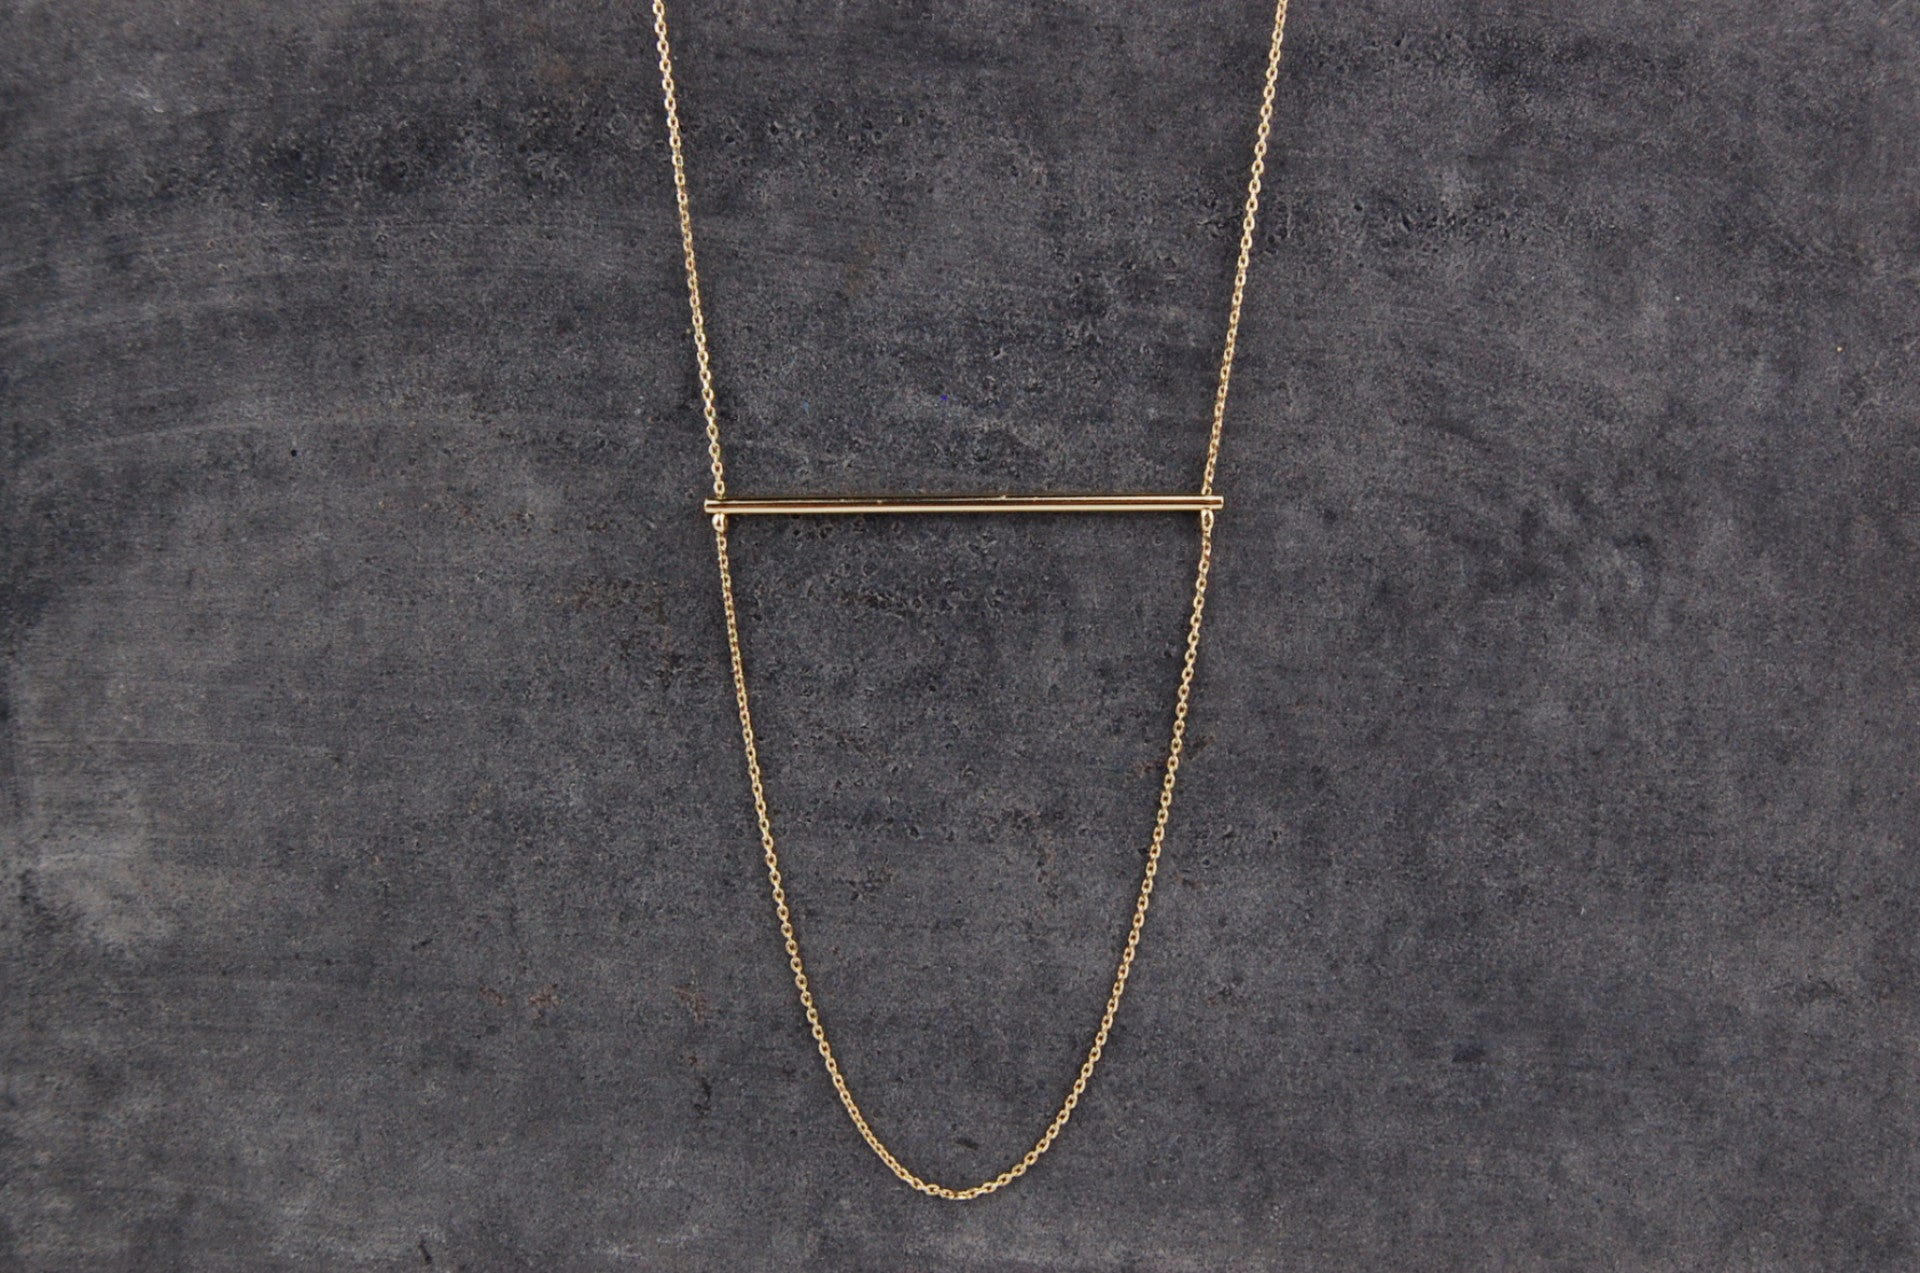 horizontal bar necklace (925 silver gold-plated)